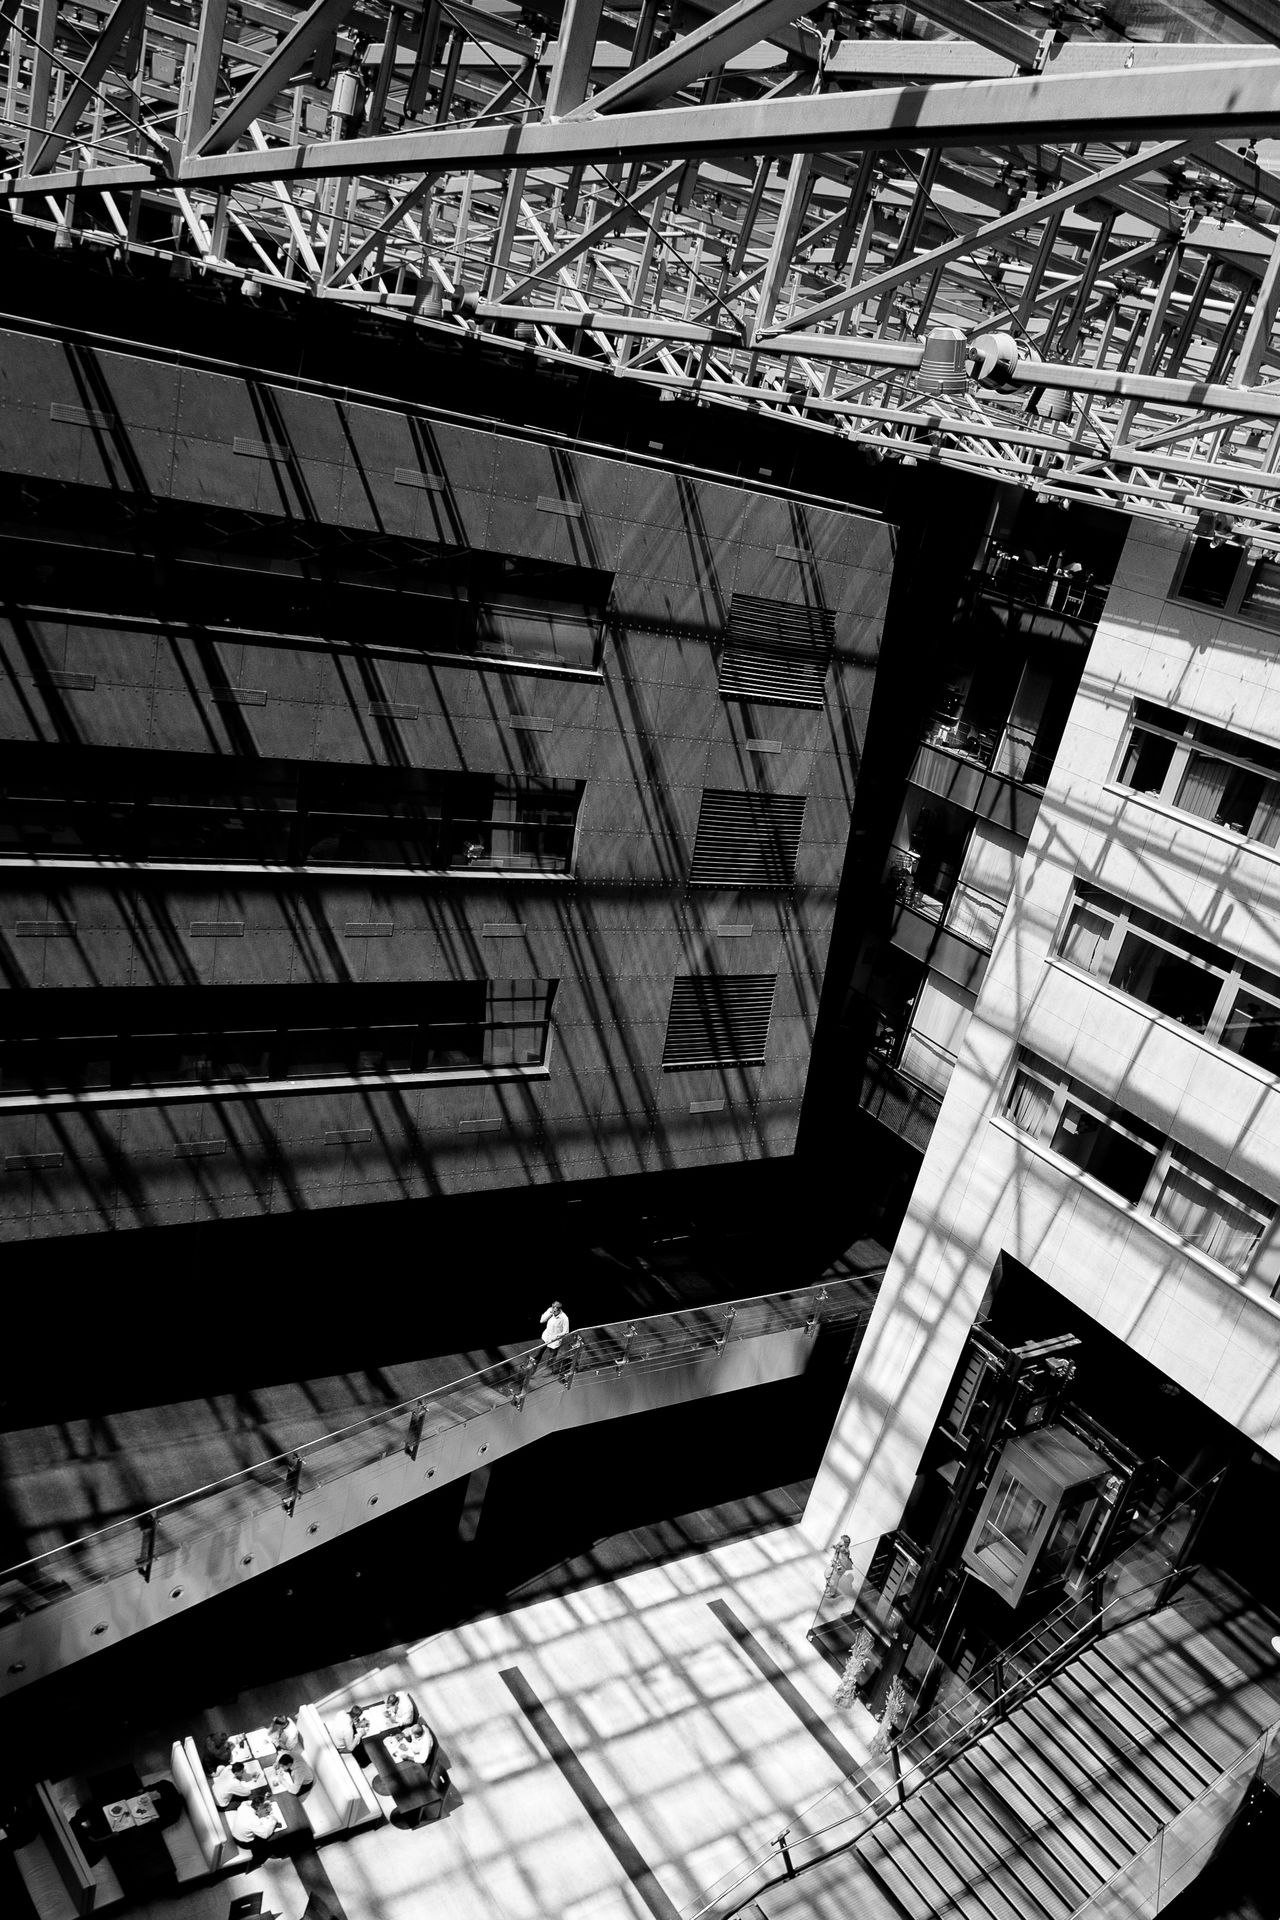 Architectural Feature Architecture Atrium Building Built Structure Day High Angle View Modern The Architect - 20I6 EyeEm Awards The Architect - 2016 EyeEm Awards